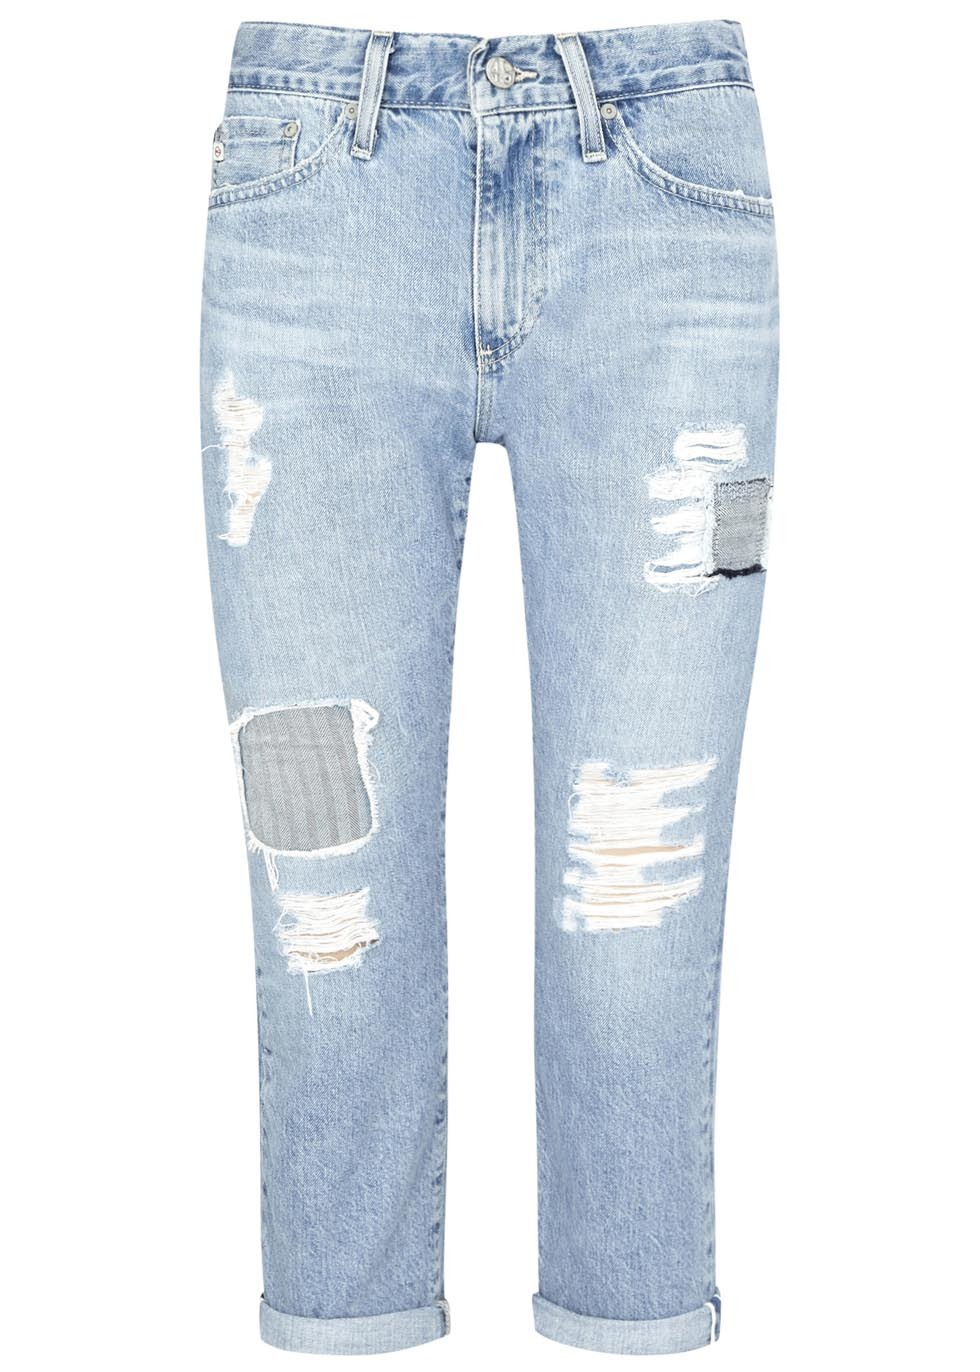 The Drew Light Blue Boyfriend Jeans Size W30 - style: boyfriend; length: standard; pattern: plain; pocket detail: traditional 5 pocket; waist: mid/regular rise; predominant colour: denim; occasions: casual; fibres: cotton - stretch; jeans detail: whiskering, washed/faded, rips; jeans & bottoms detail: turn ups; texture group: denim; pattern type: fabric; season: s/s 2015; wardrobe: basic